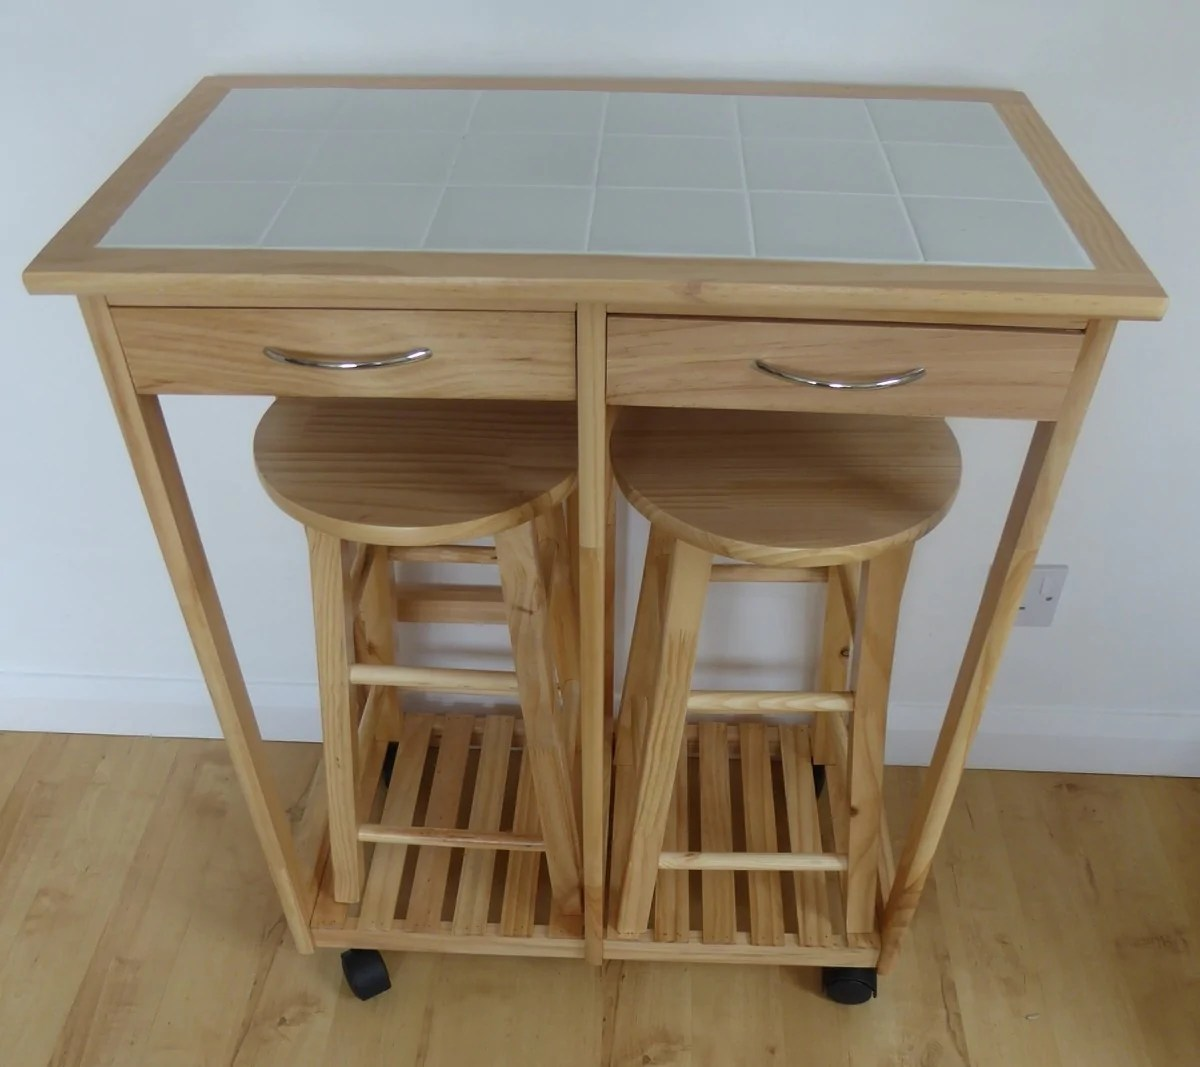 2 seater breakfast bar set folding kitchen table stools drawer tile top and wood